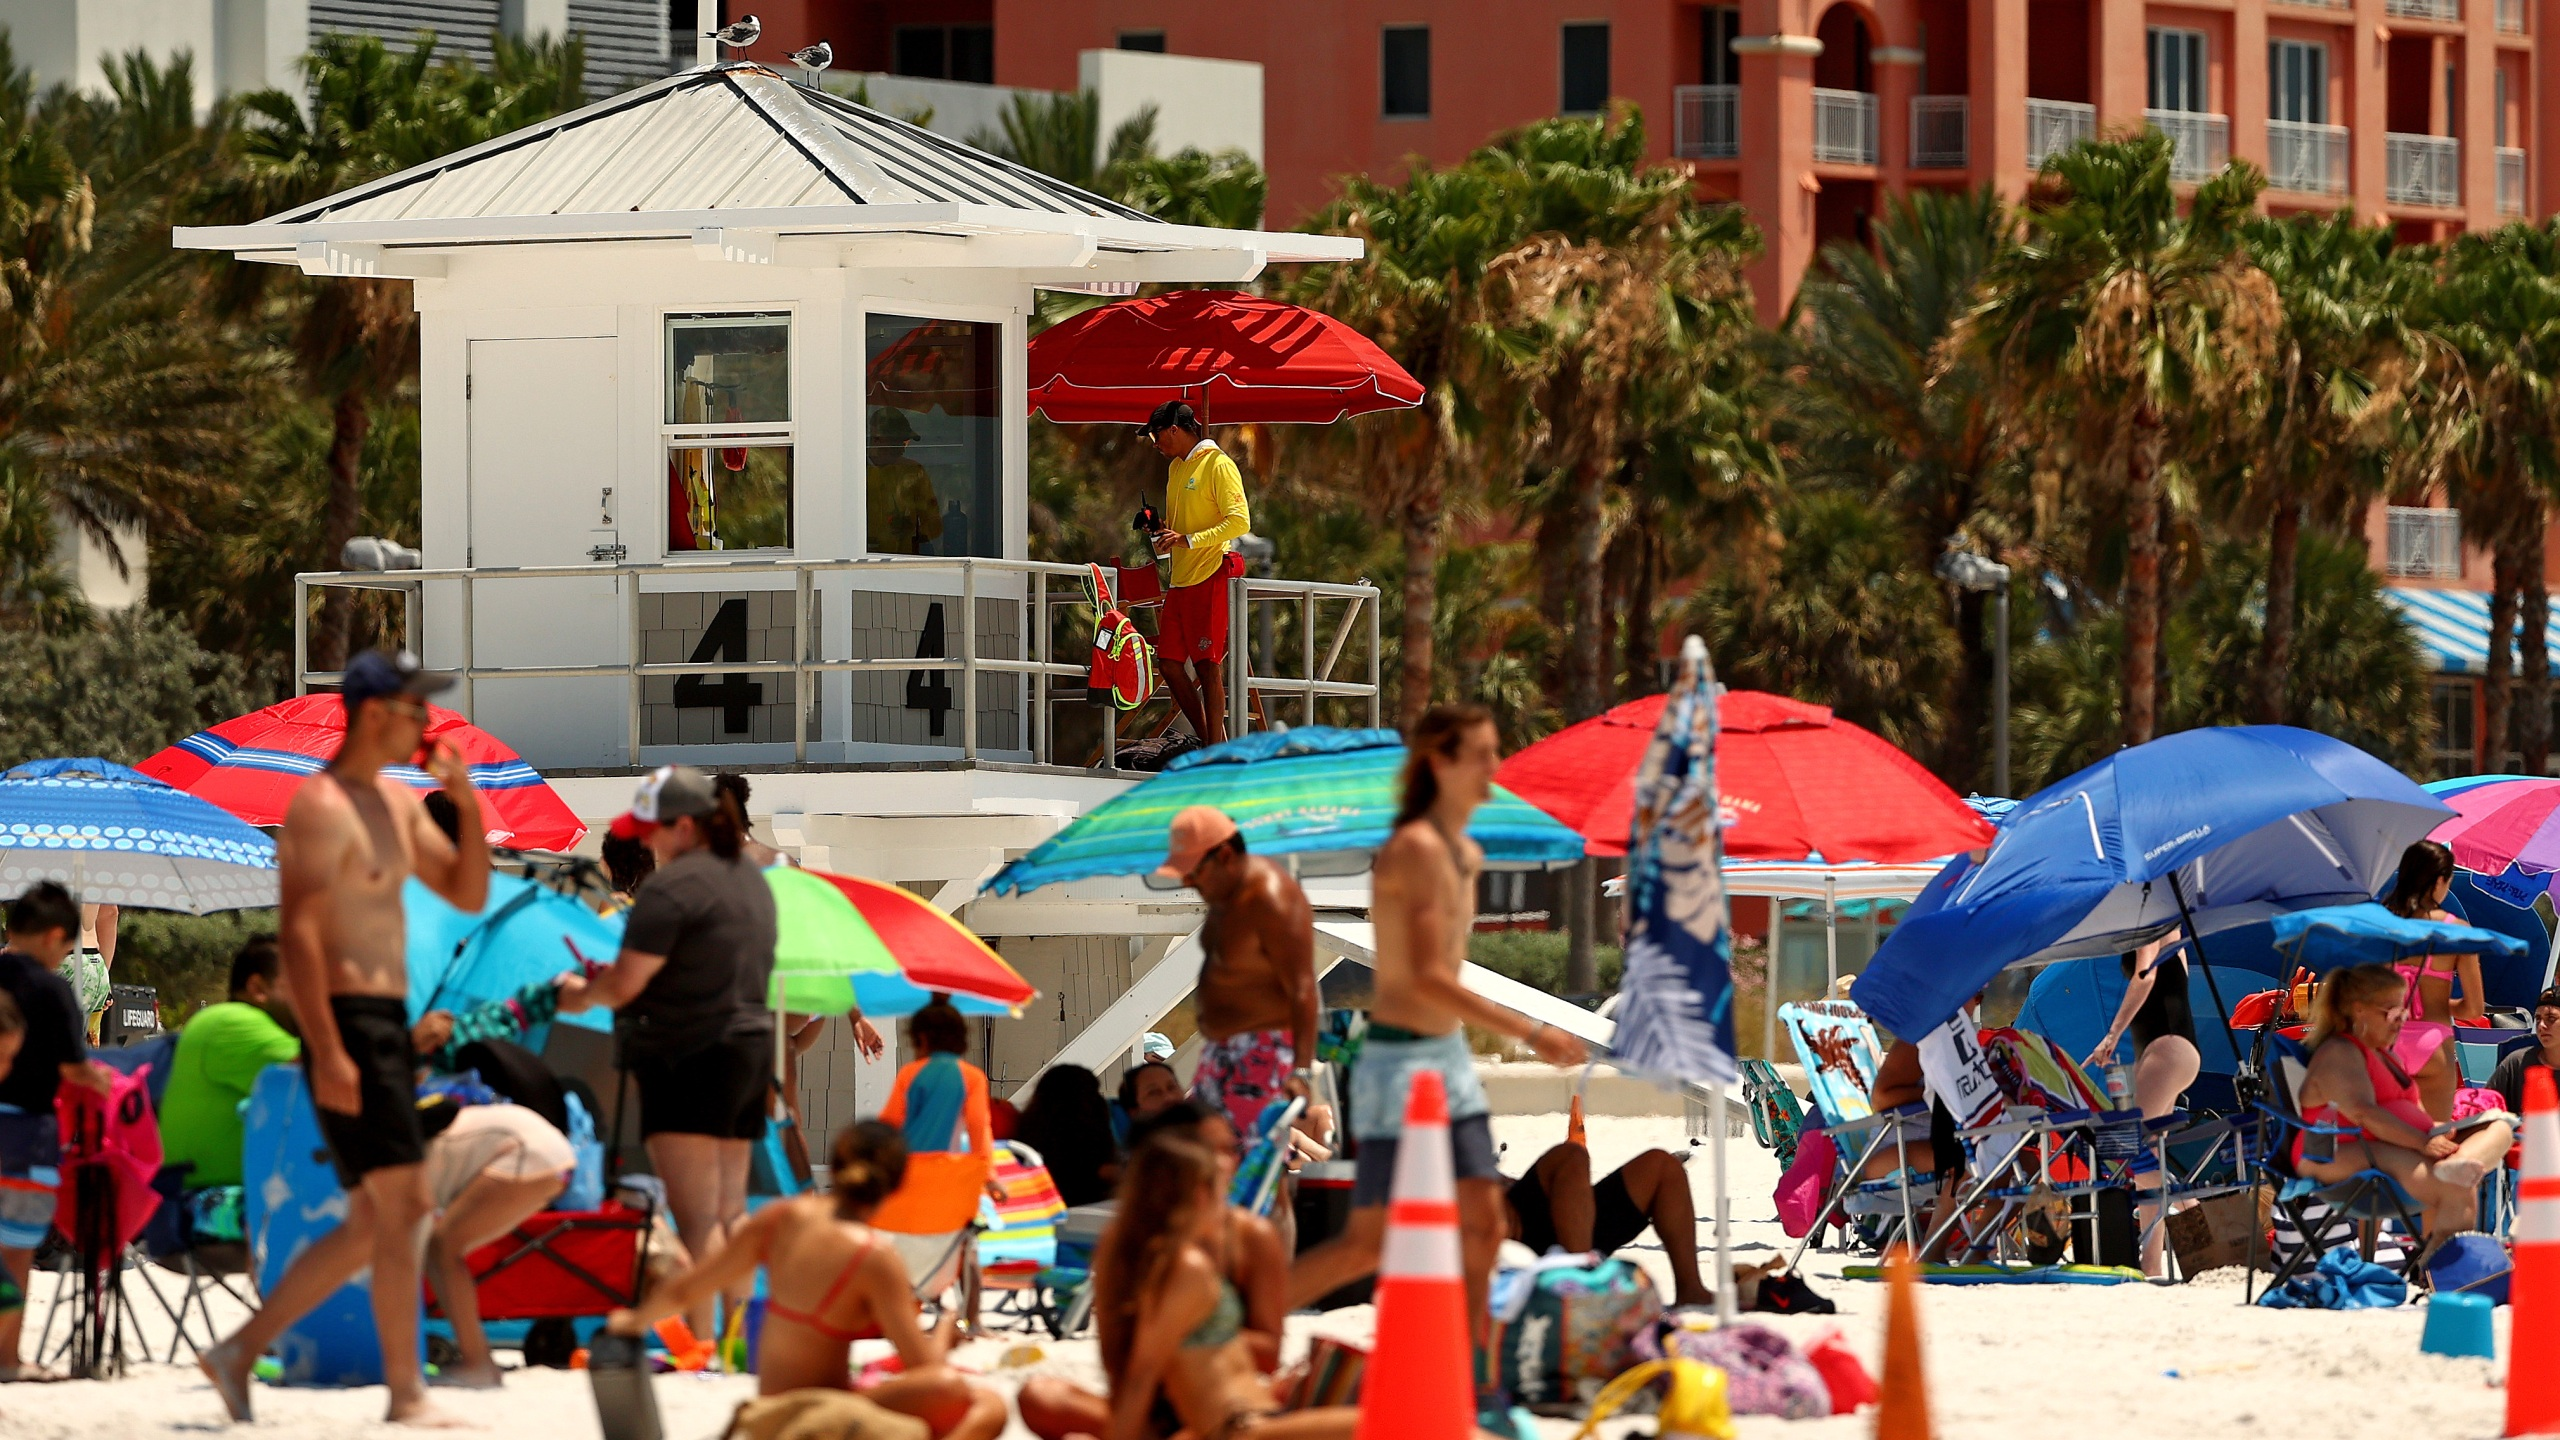 People visit Clearwater Beach on May 20, 2020, in Clearwater, Fla. Florida opened its beaches as part of Phase 1 of its reopening. (Mike Ehrmann/Getty Images)